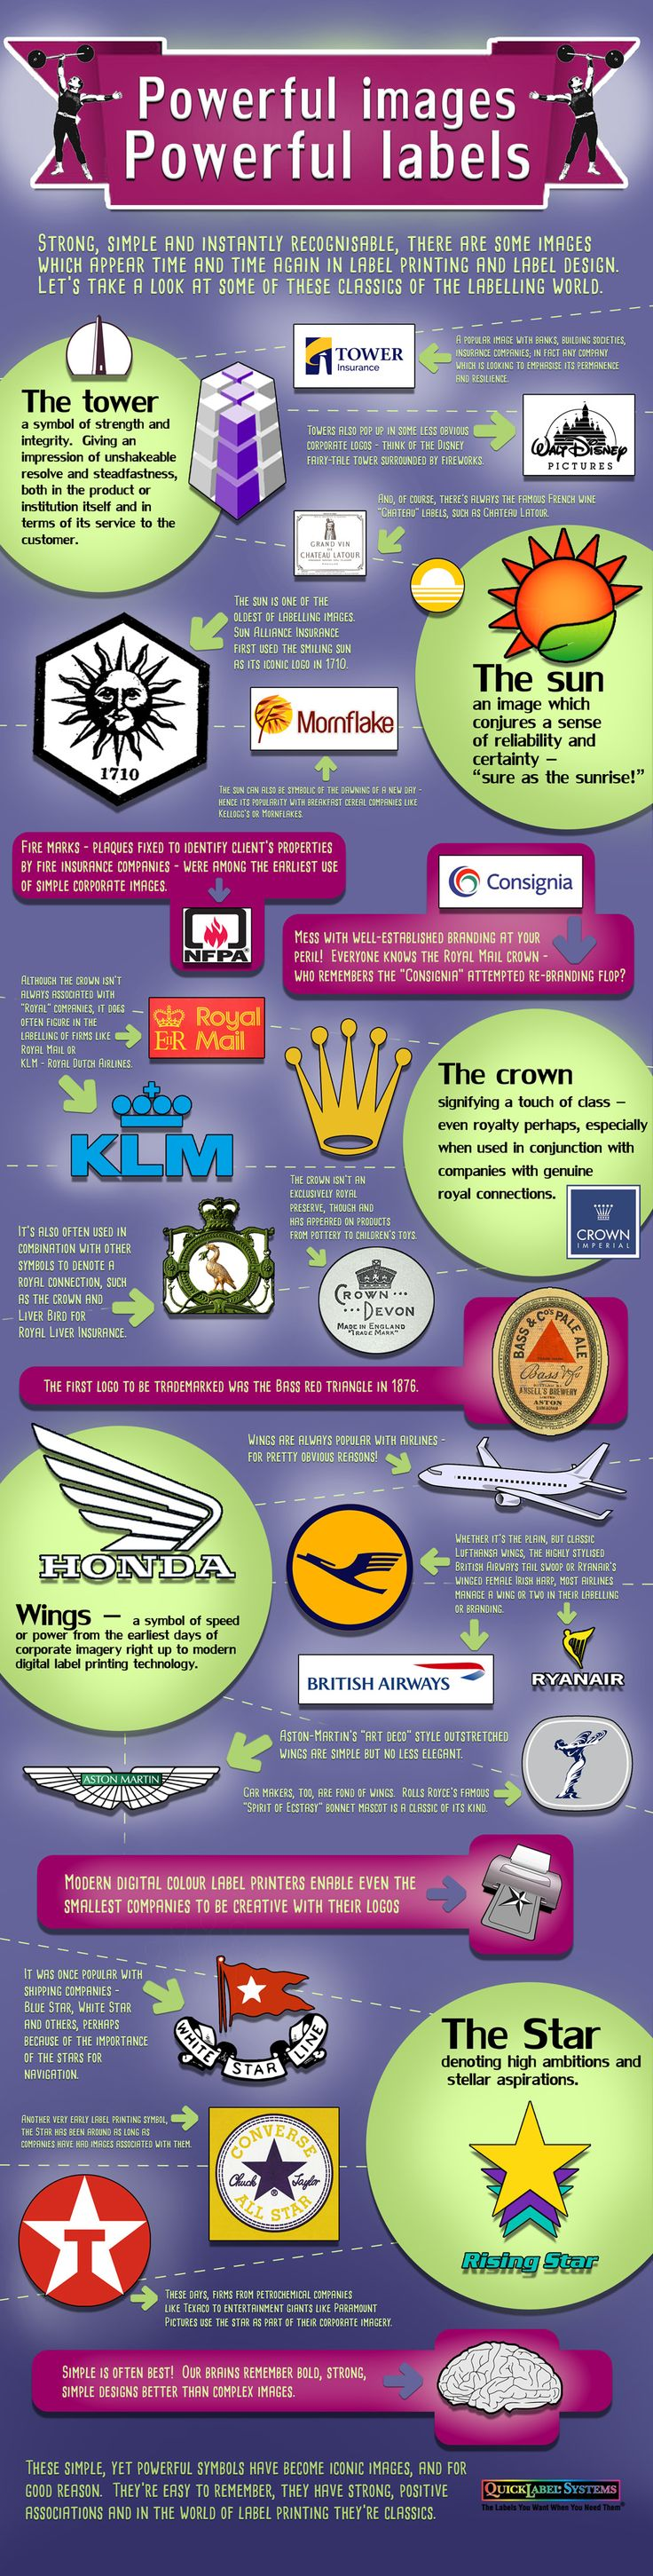 Label printing image by QuickLabel Systems It is easy to recognise industry knowledge and experience in this Infographic provided by www.quicklabel.co.uk, which shows some of the strong images used for logos. You too can benefit from this with your own #digitallabelprinter.